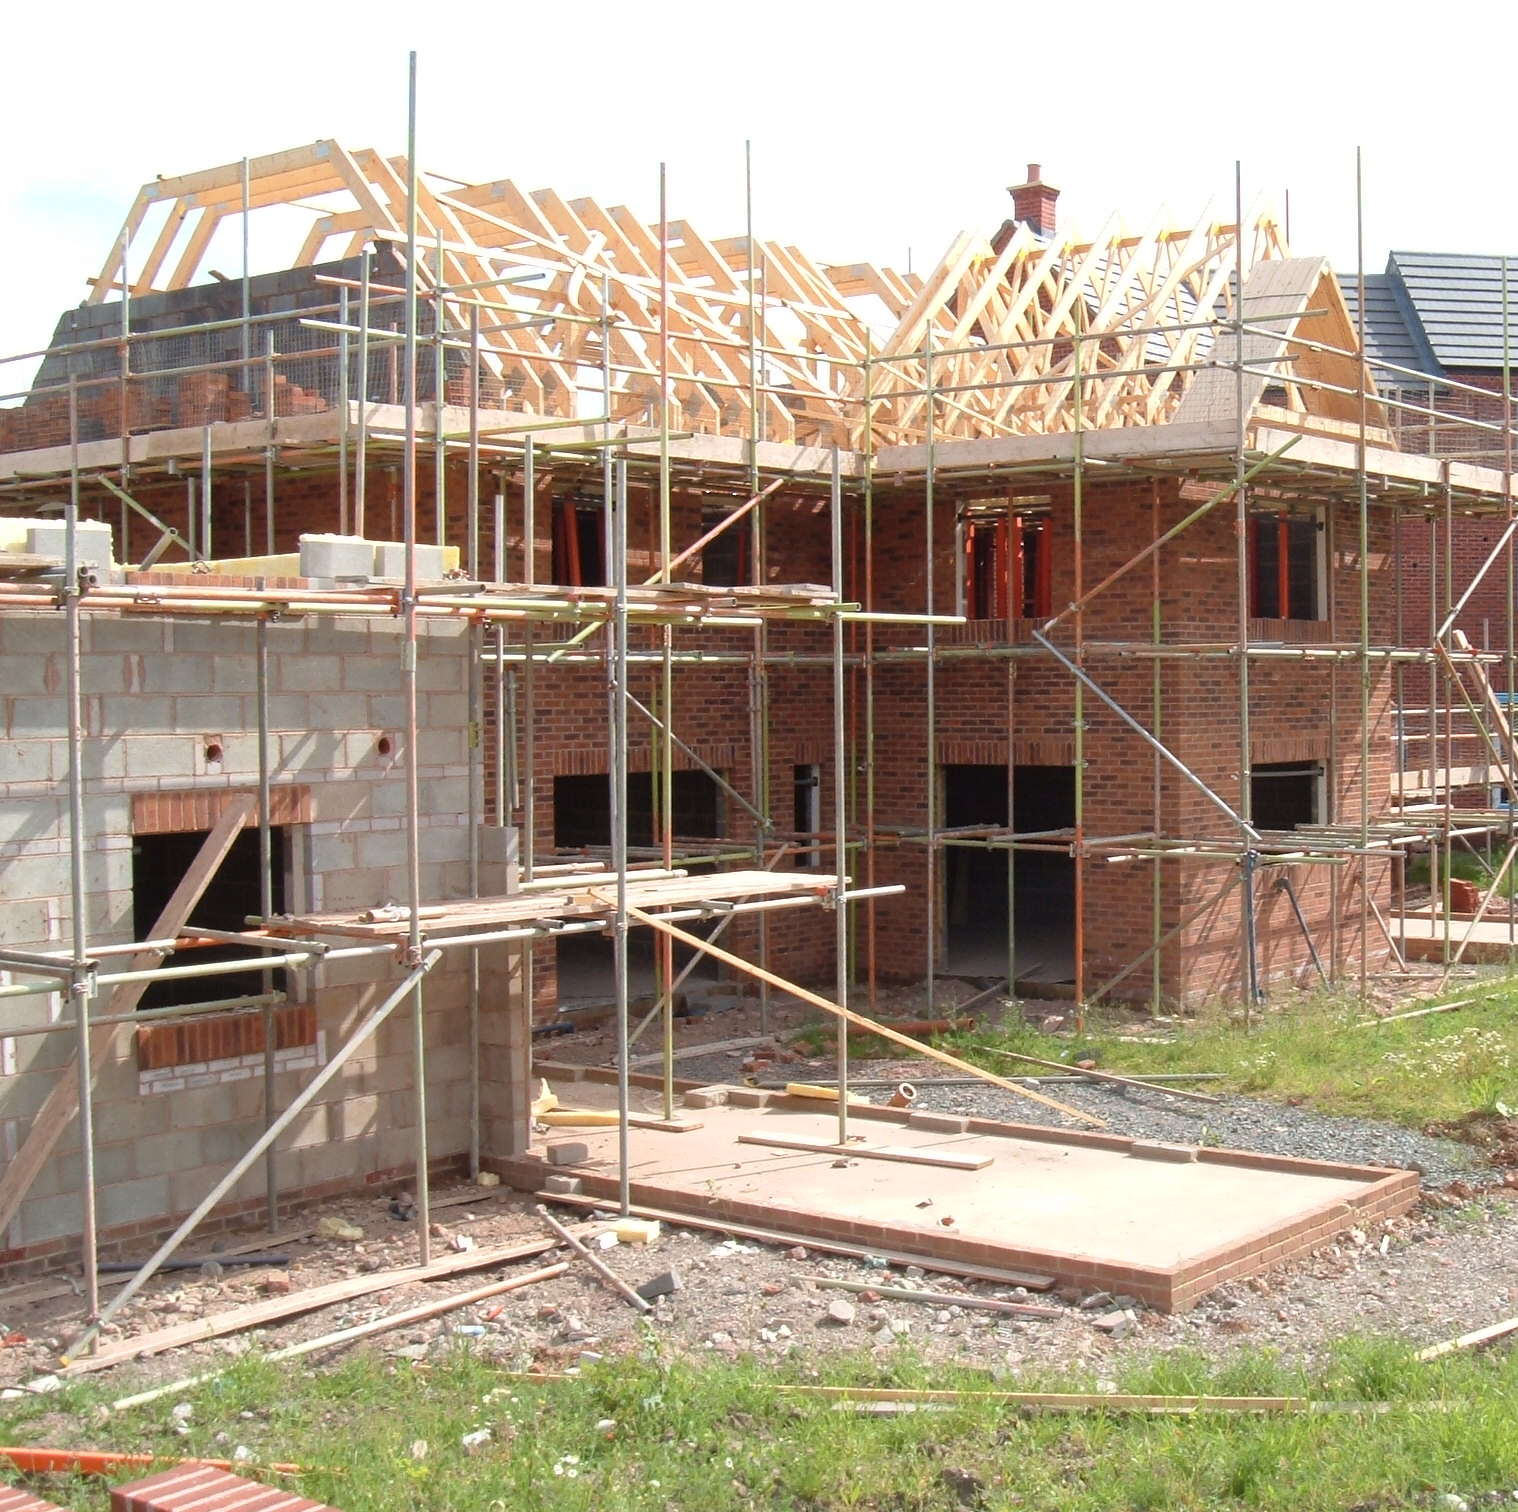 Government To Directly Commission 13,000 New Homes